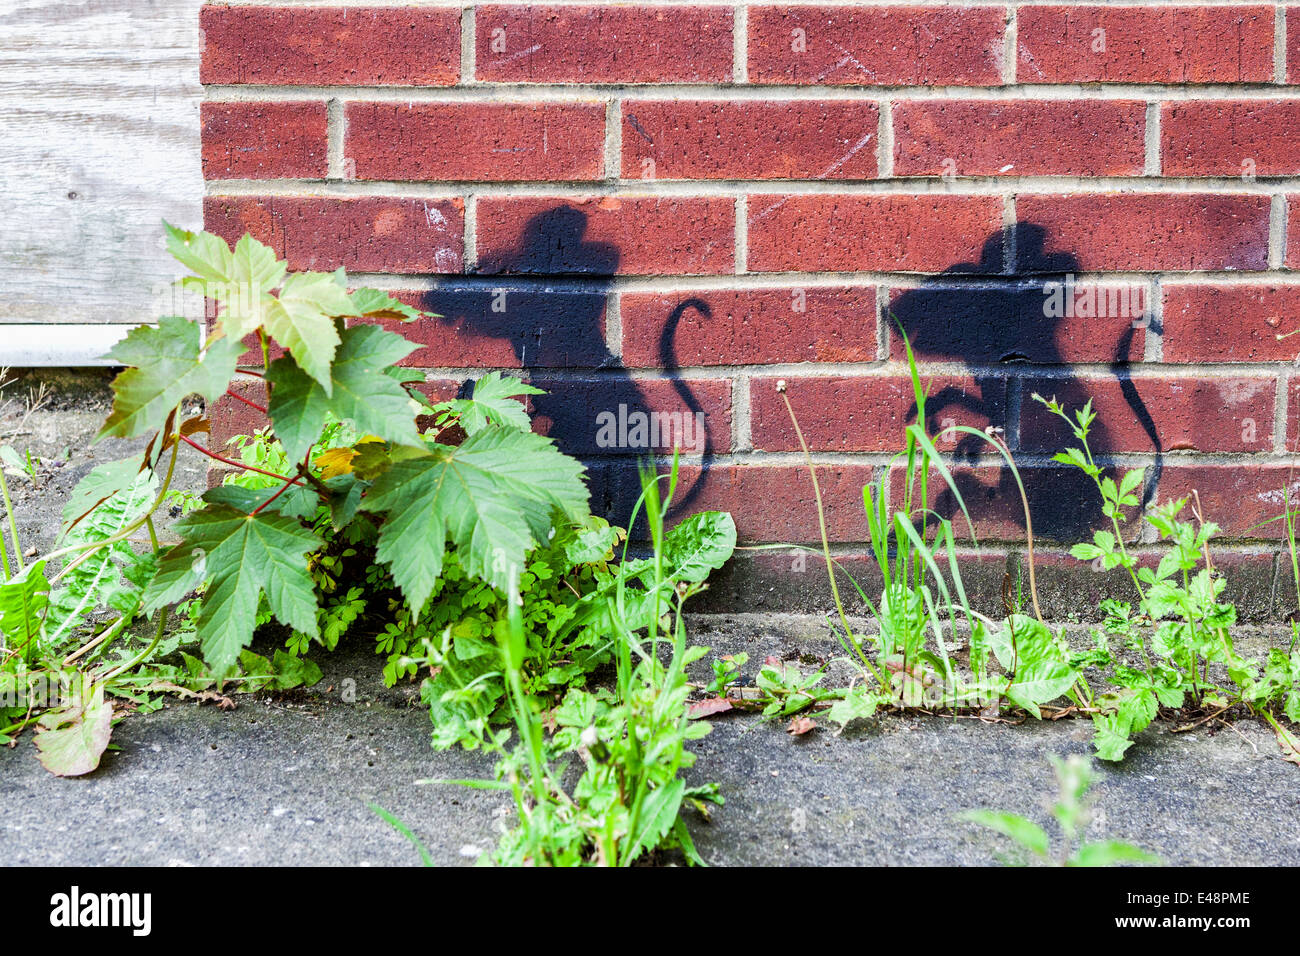 Street art rats - rat stencil on a brick wall of the closed Mereway Day Centre - Stock Image